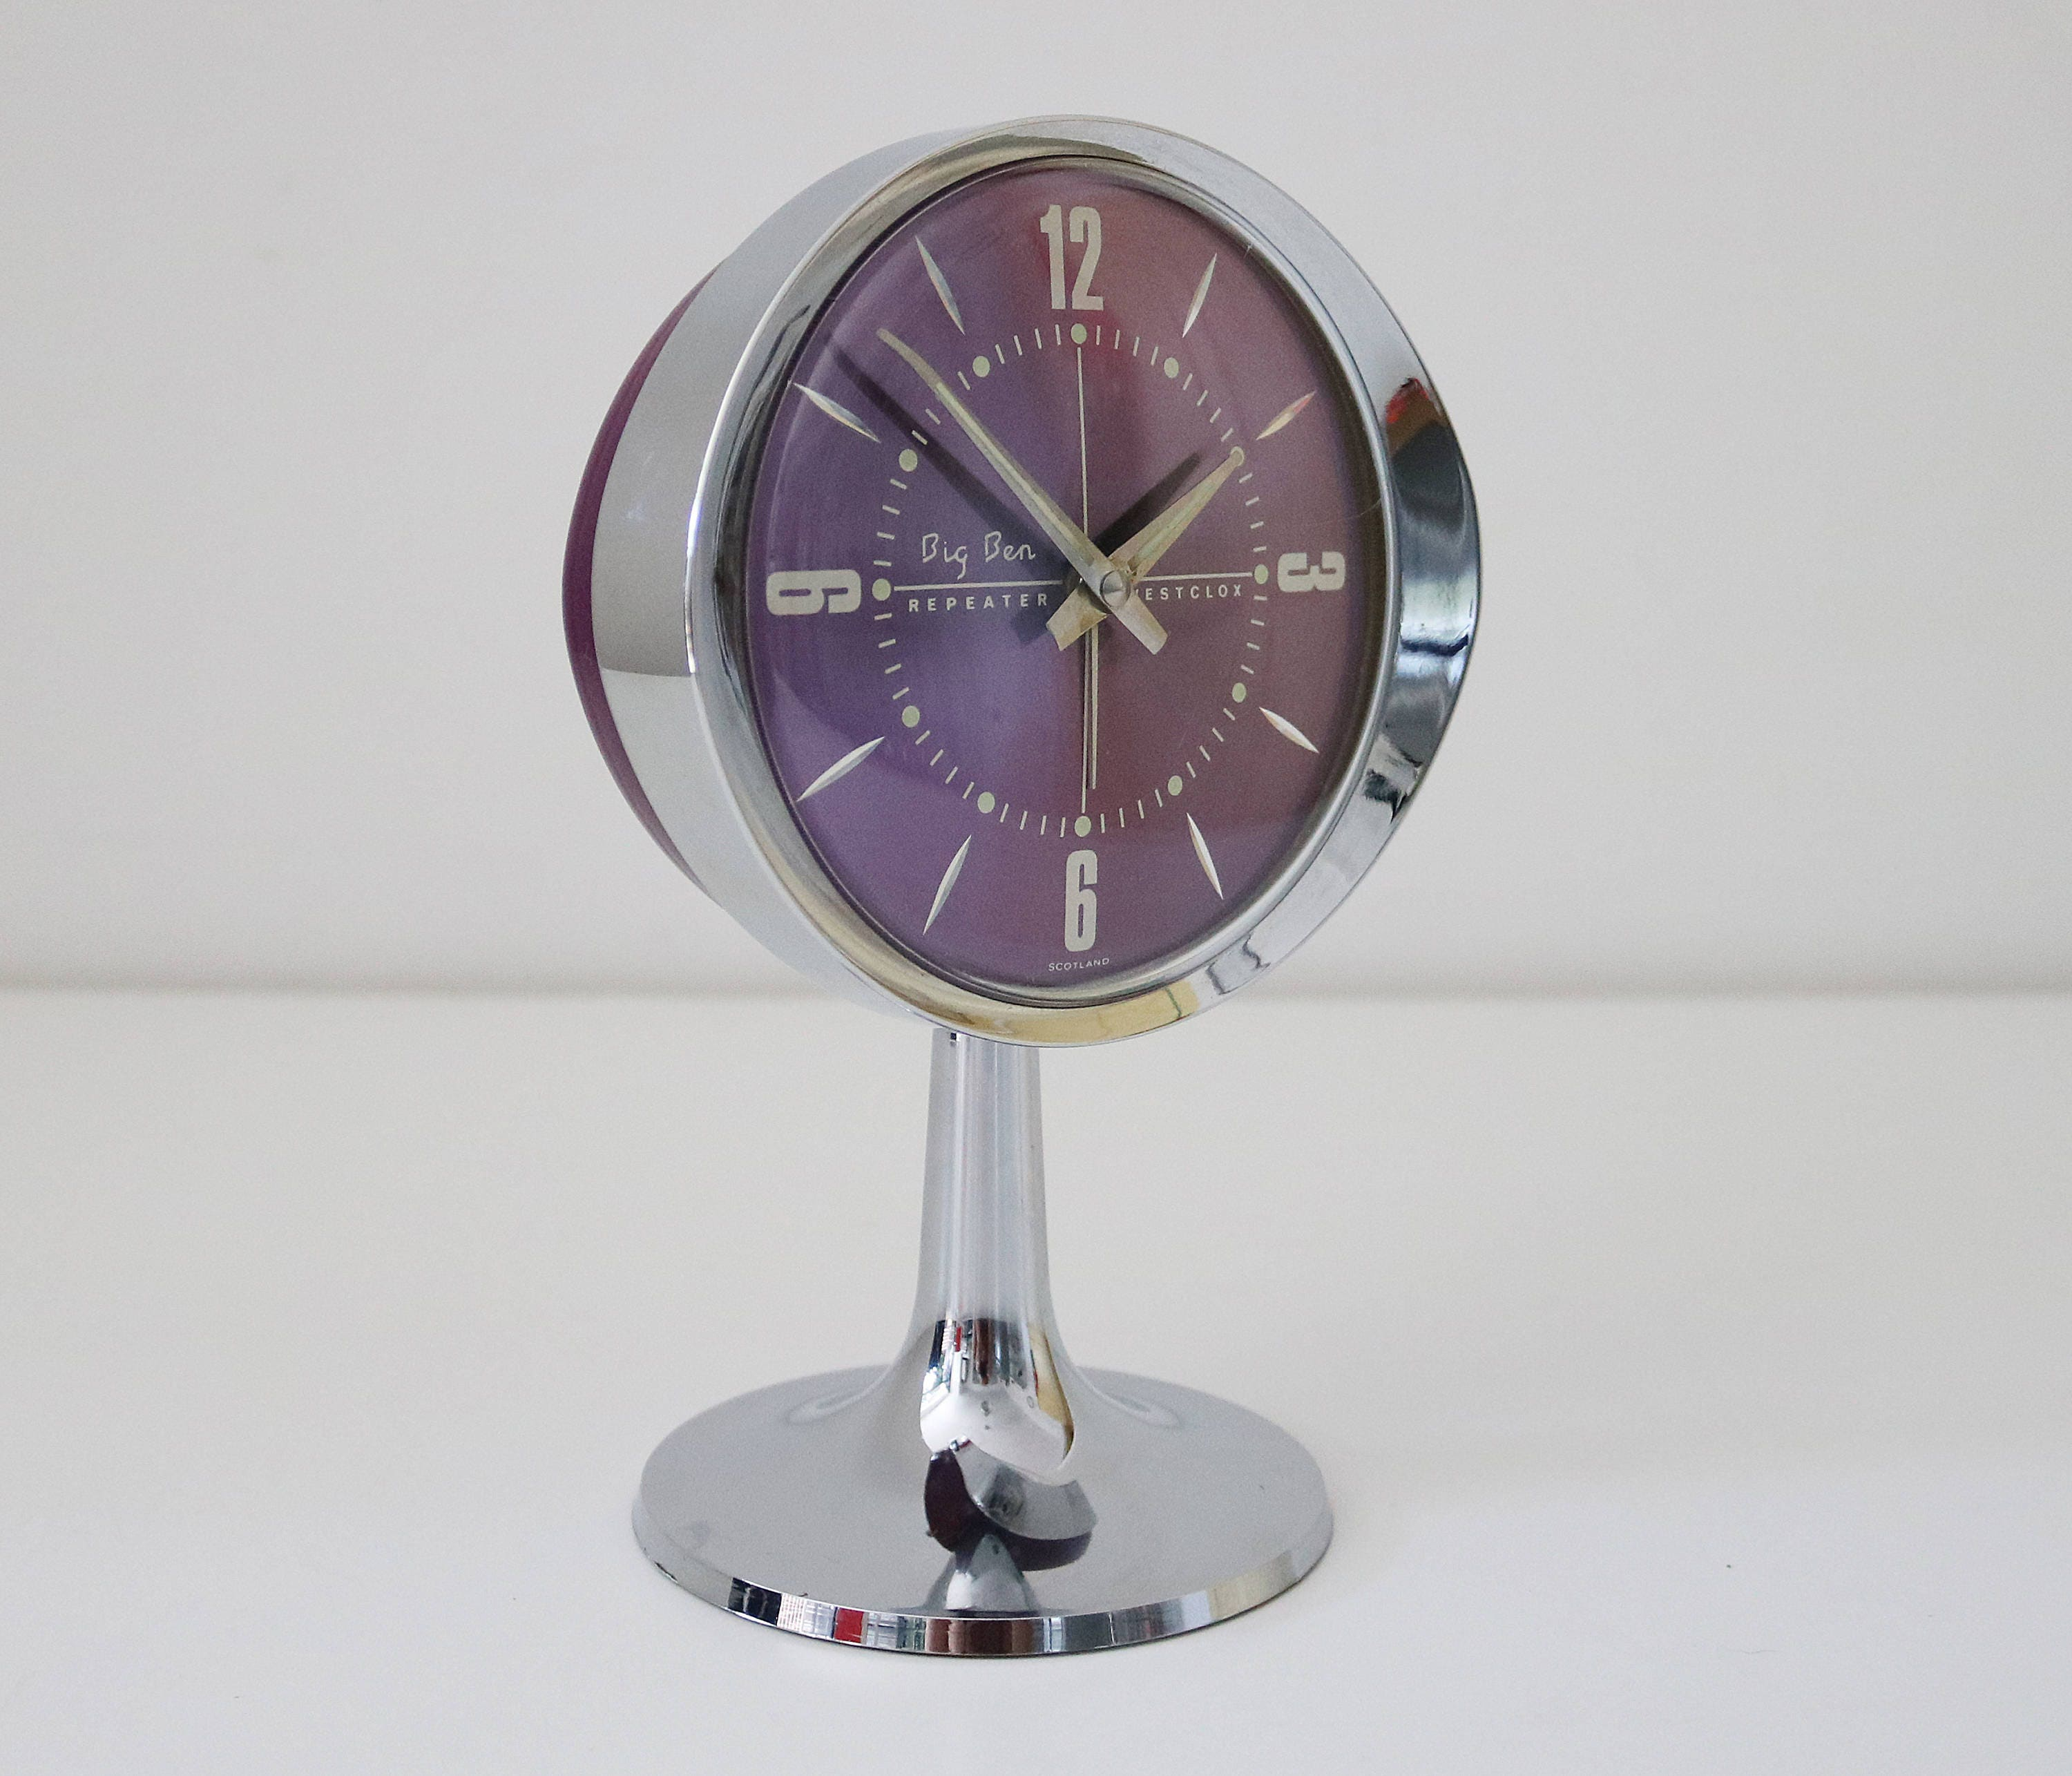 Westclox Big Ben Repeater Space Age Clock Shiny Chrome And Purple On